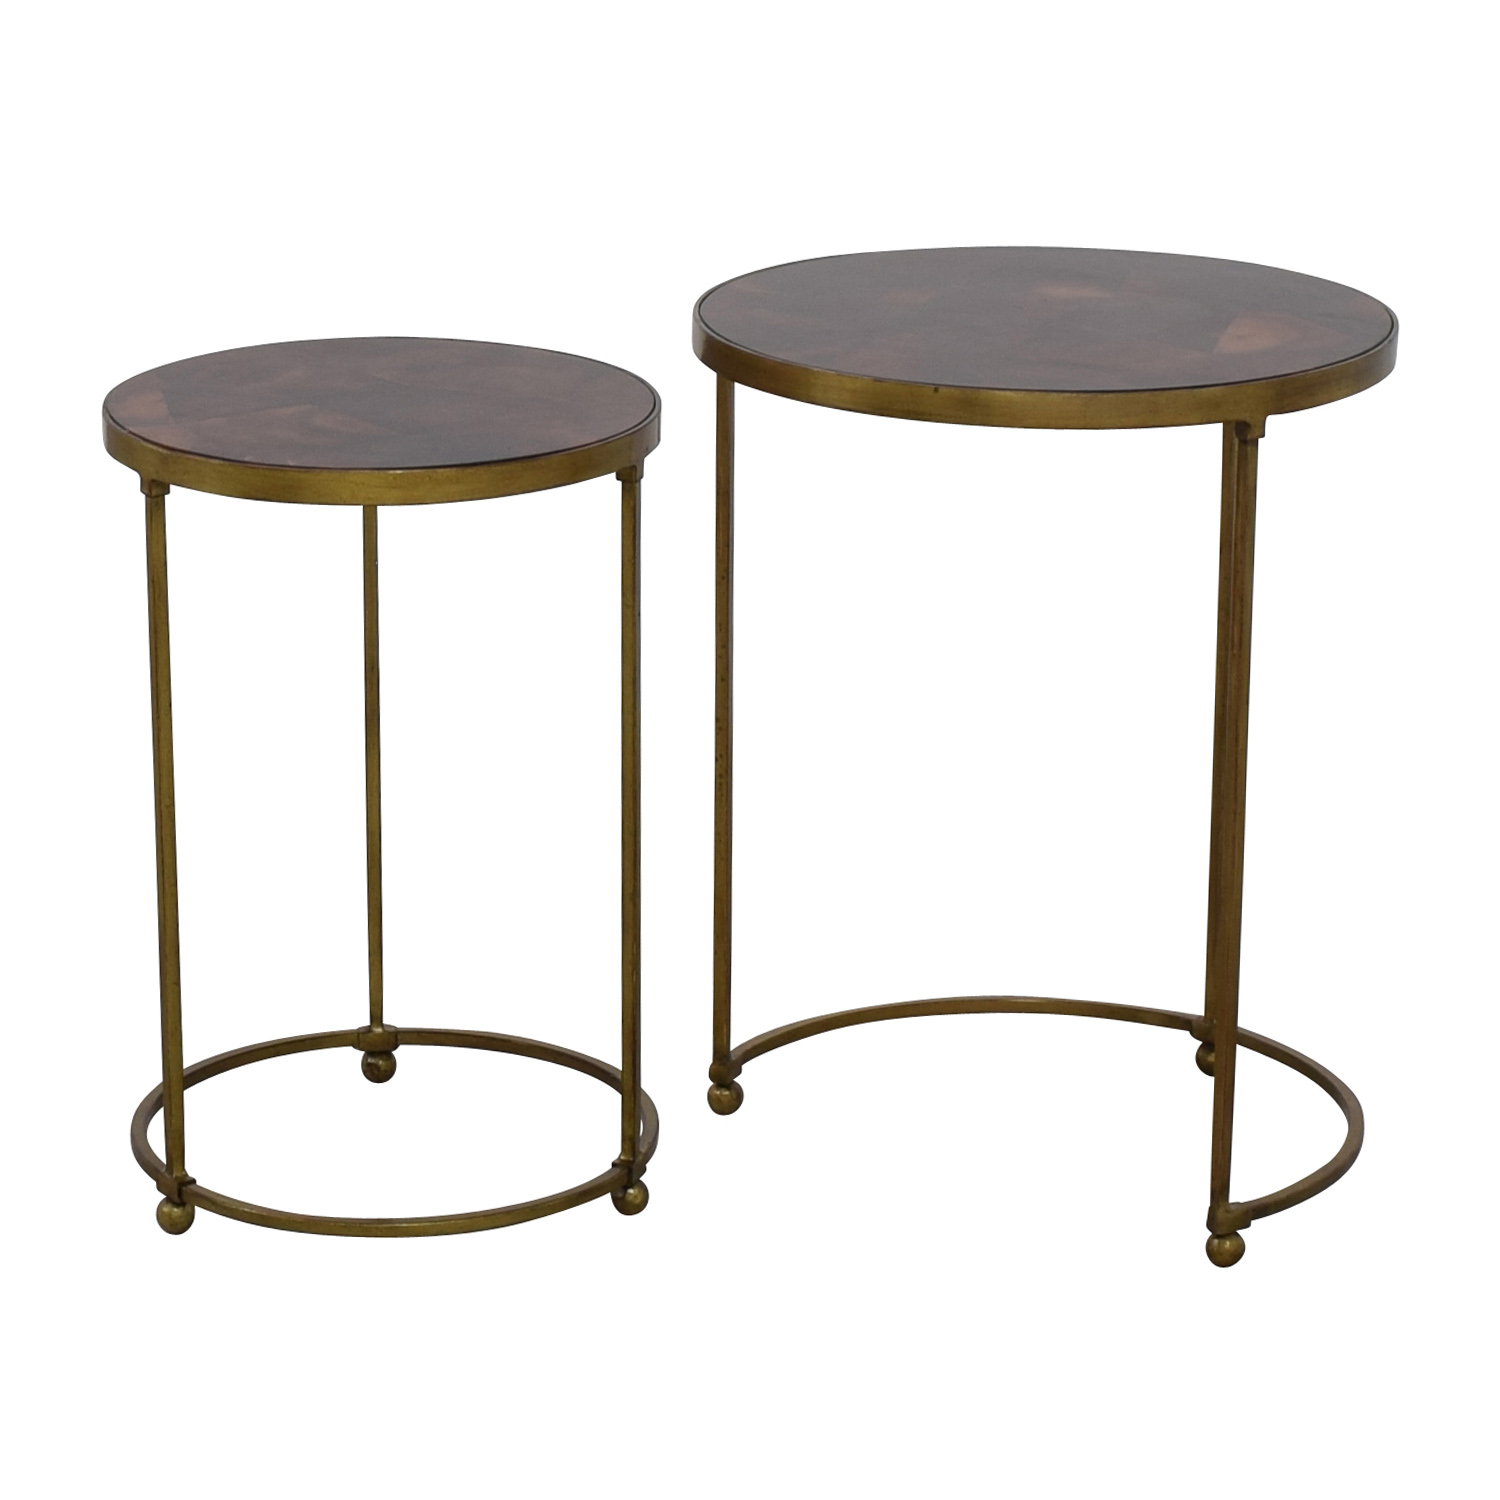 off carpet and home nesting round bronze brass accent tables table beach hut accessories furniture reviews nic set bunnings solid wood end with drawer gold legs patio umbrella